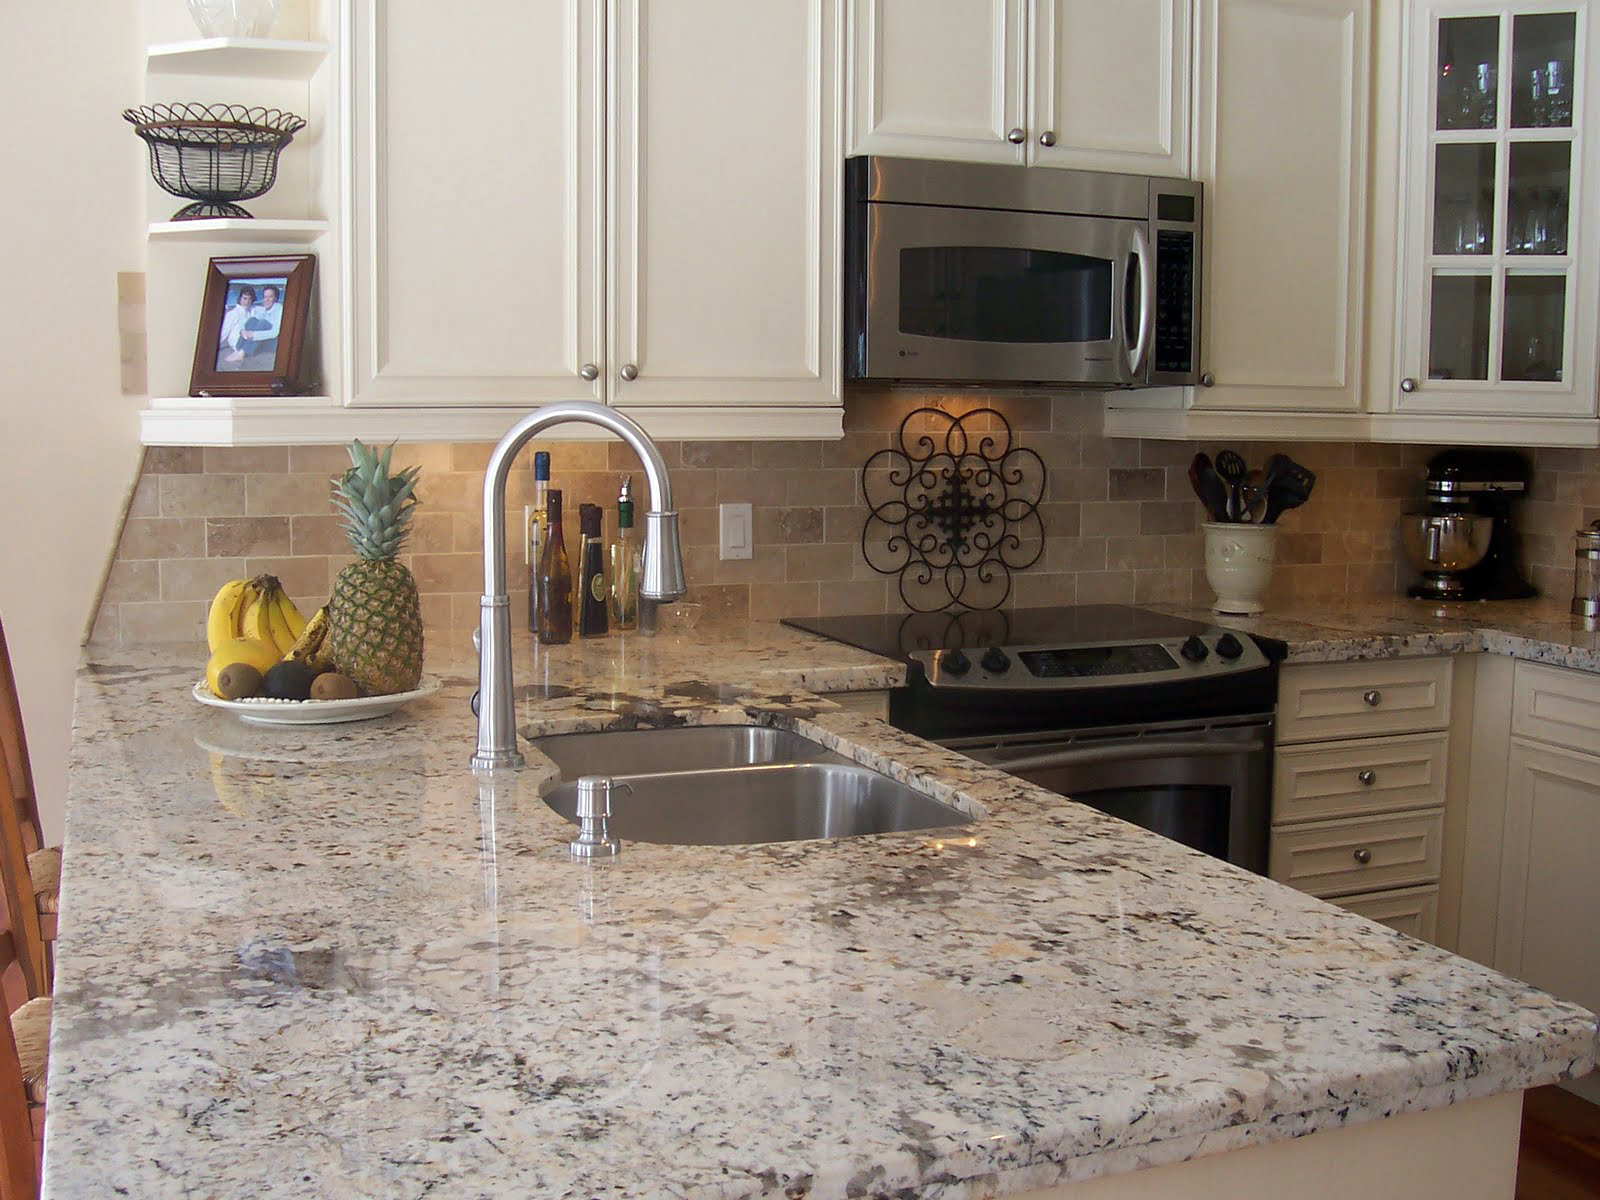 luxurious kitchen set with white dominant cashmere granite for top kitchen island double sinks with a single stainless steel faucet a dish of fuits some modern kitchen appliances